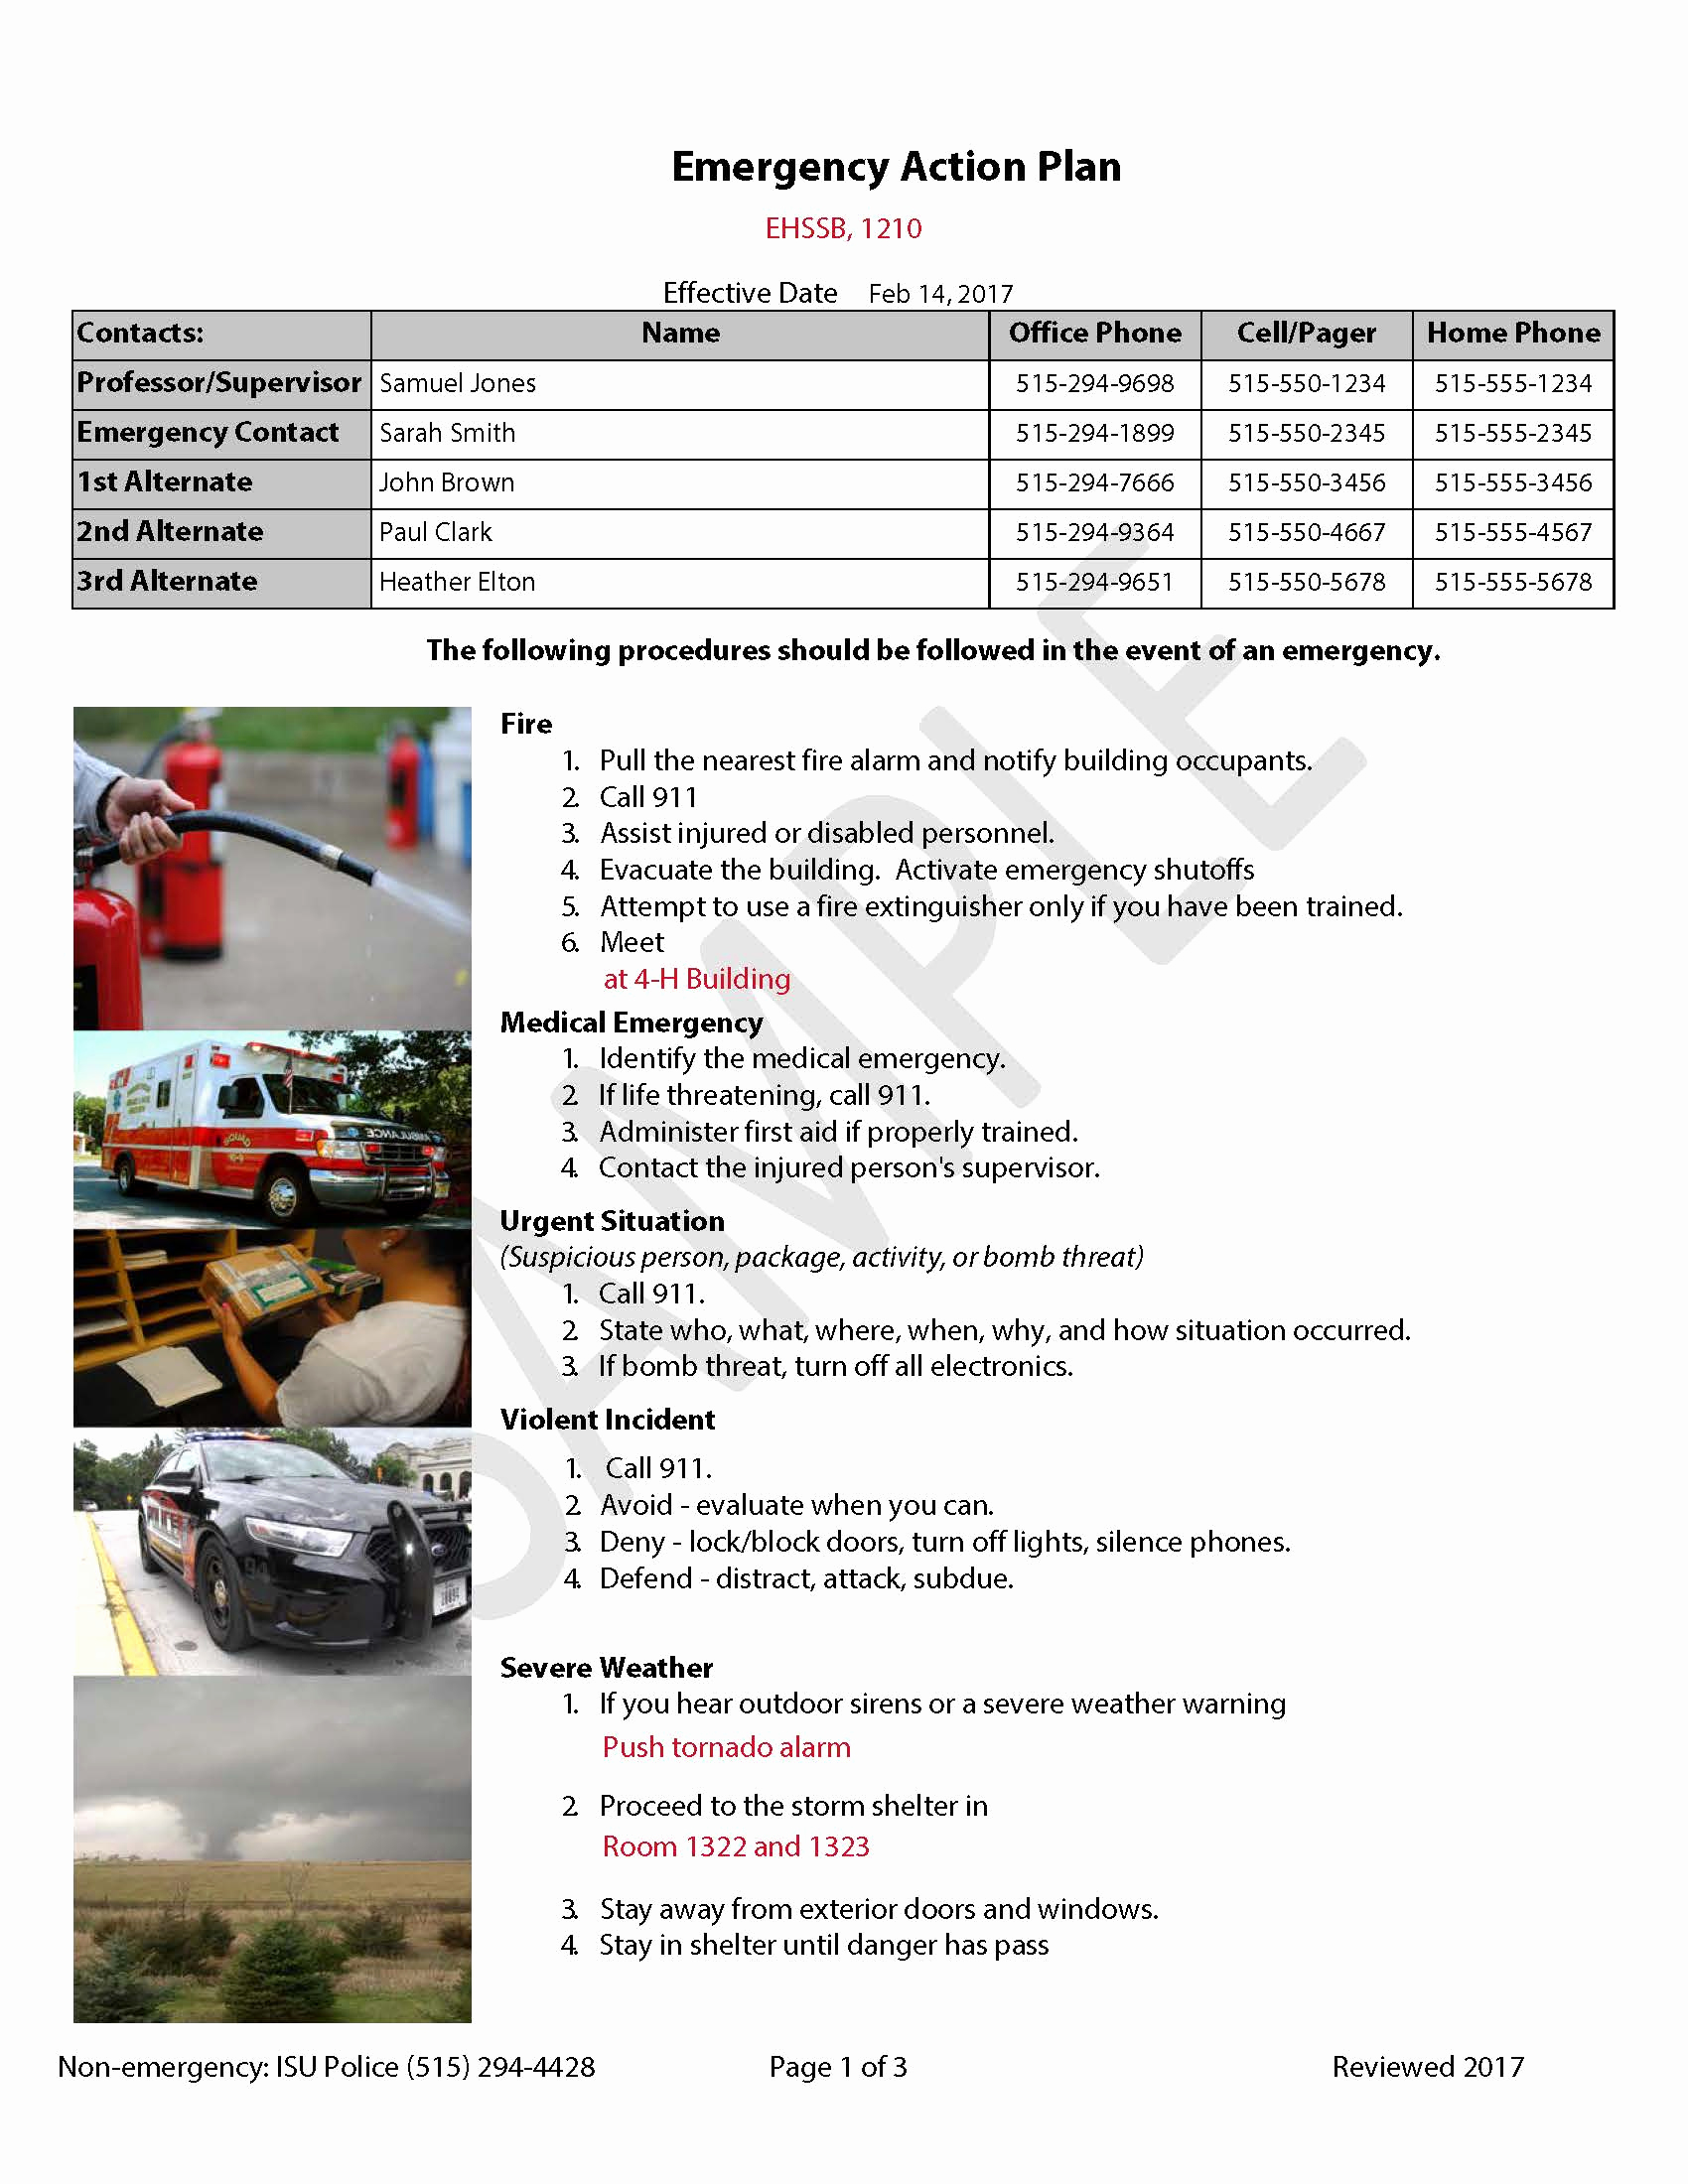 Emergency Action Plans Examples Luxury Emergency Action Plans